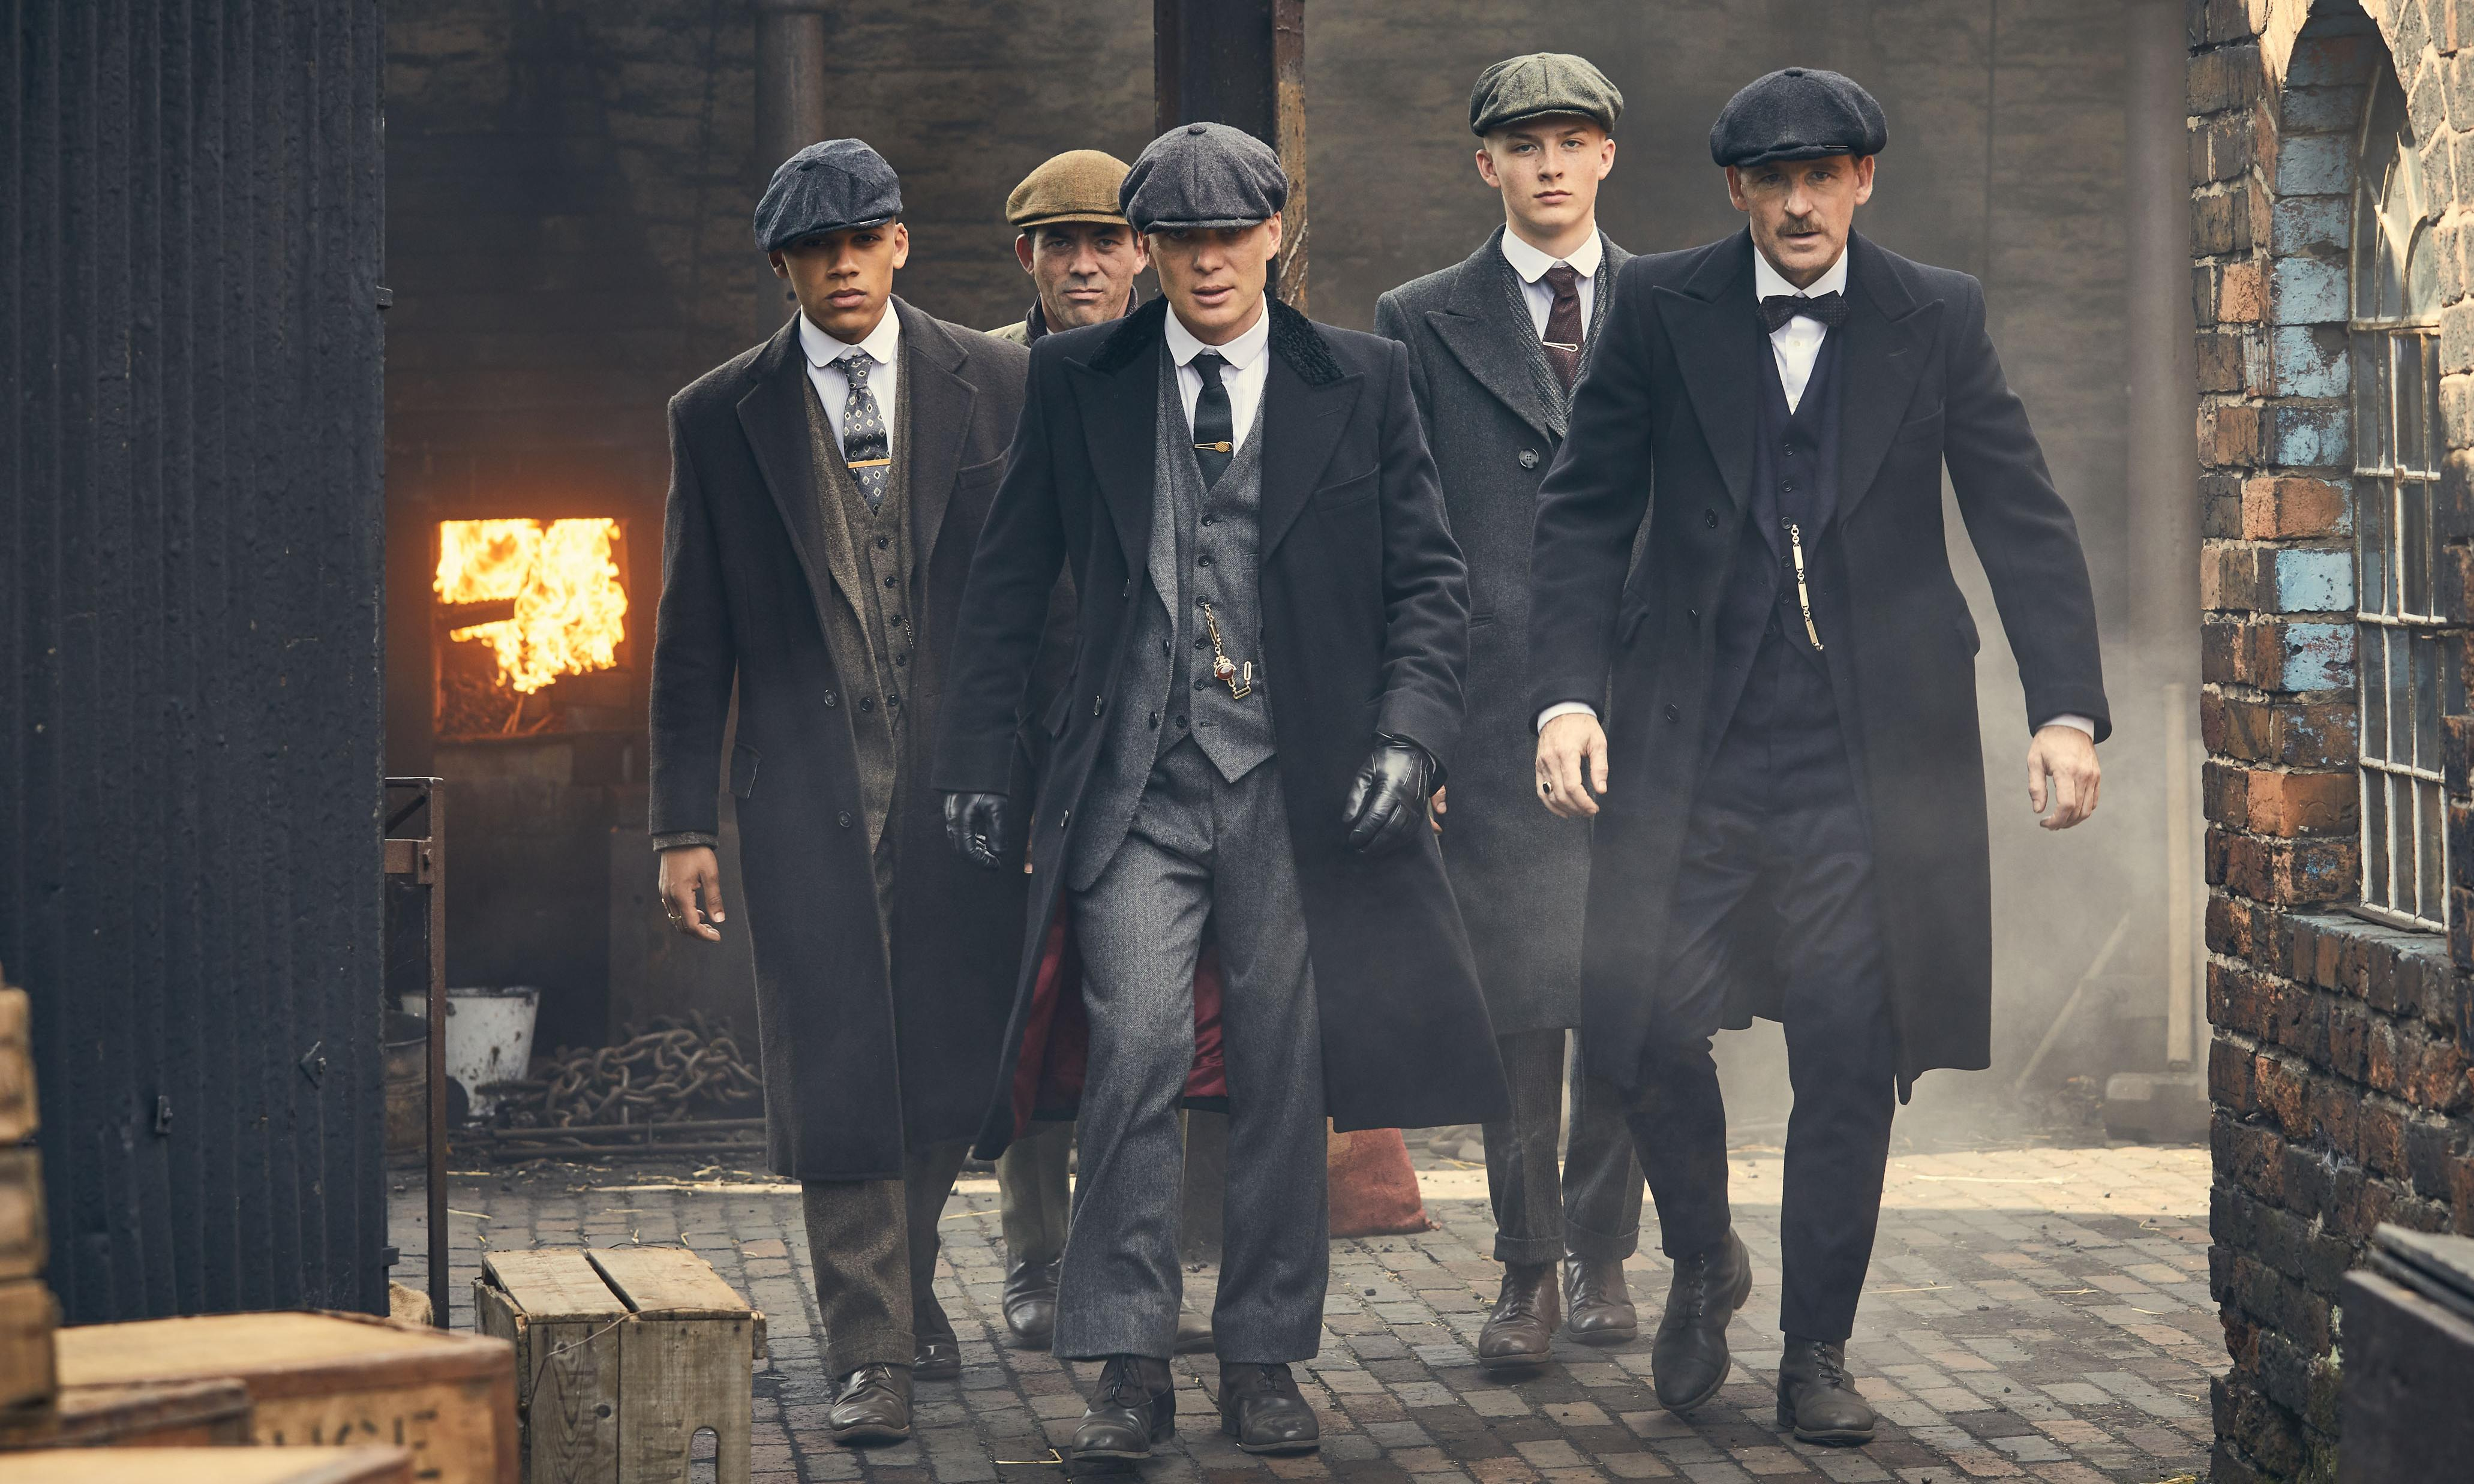 The Peaky Blinders cult is another sign of our discontented times